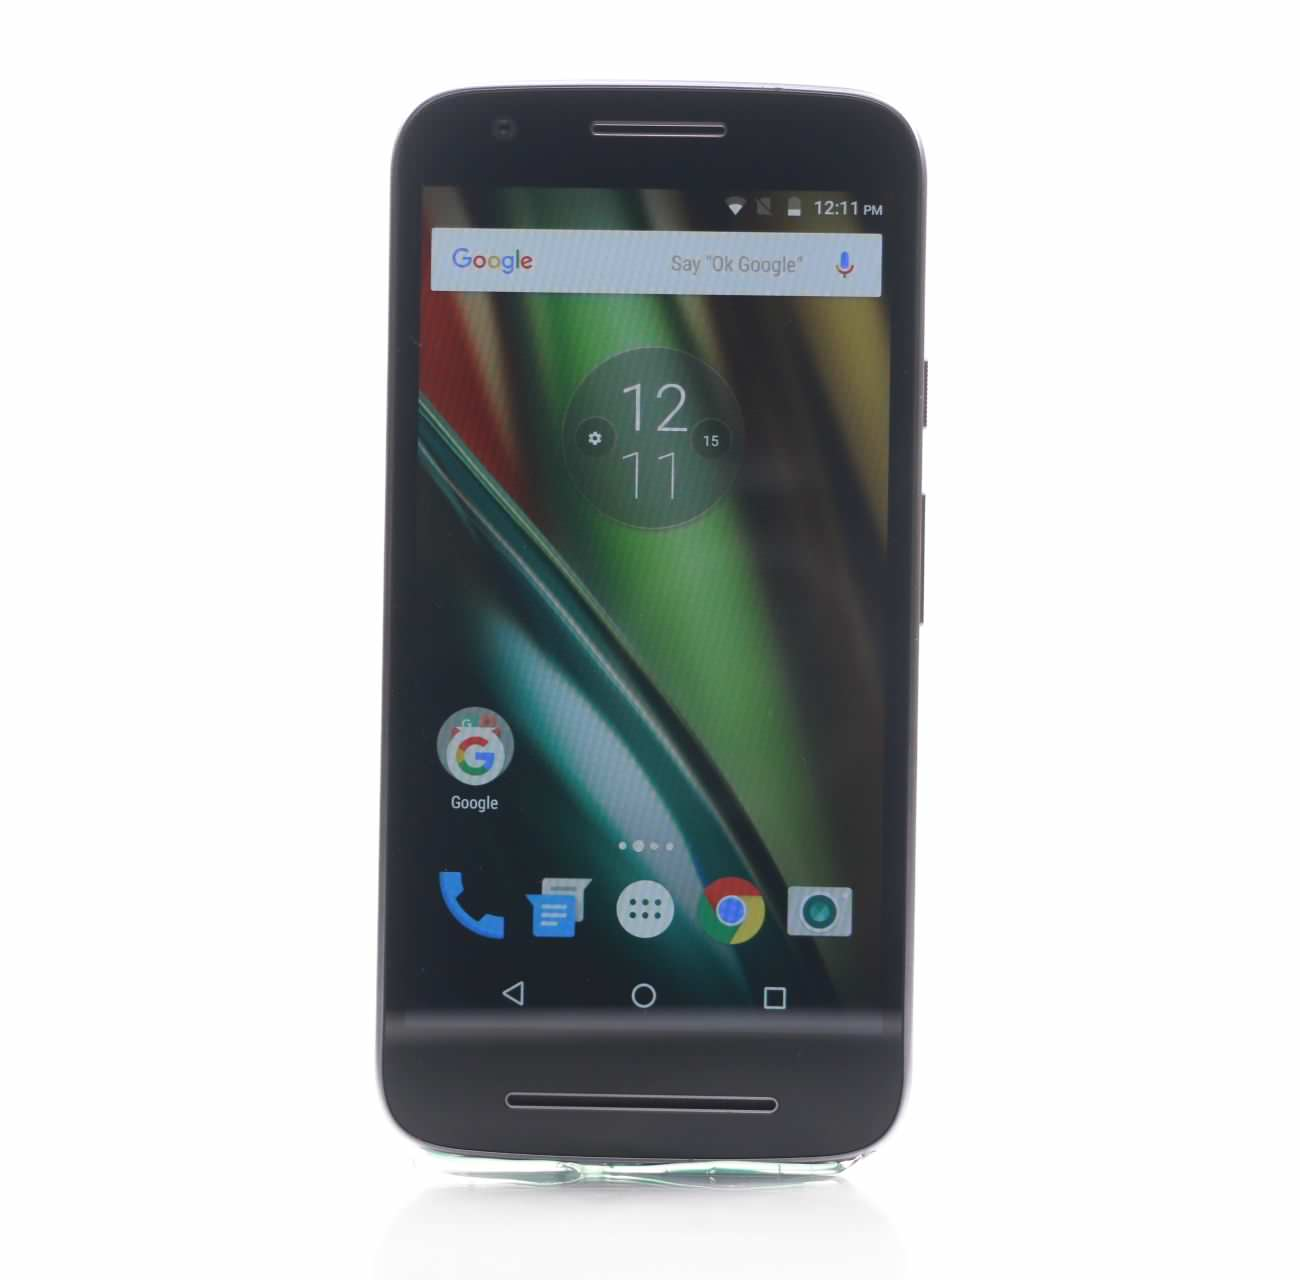 official photos f22b0 b07eb Moto E3 Power - 360 Degree View, 3D Image View | 91mobiles.com